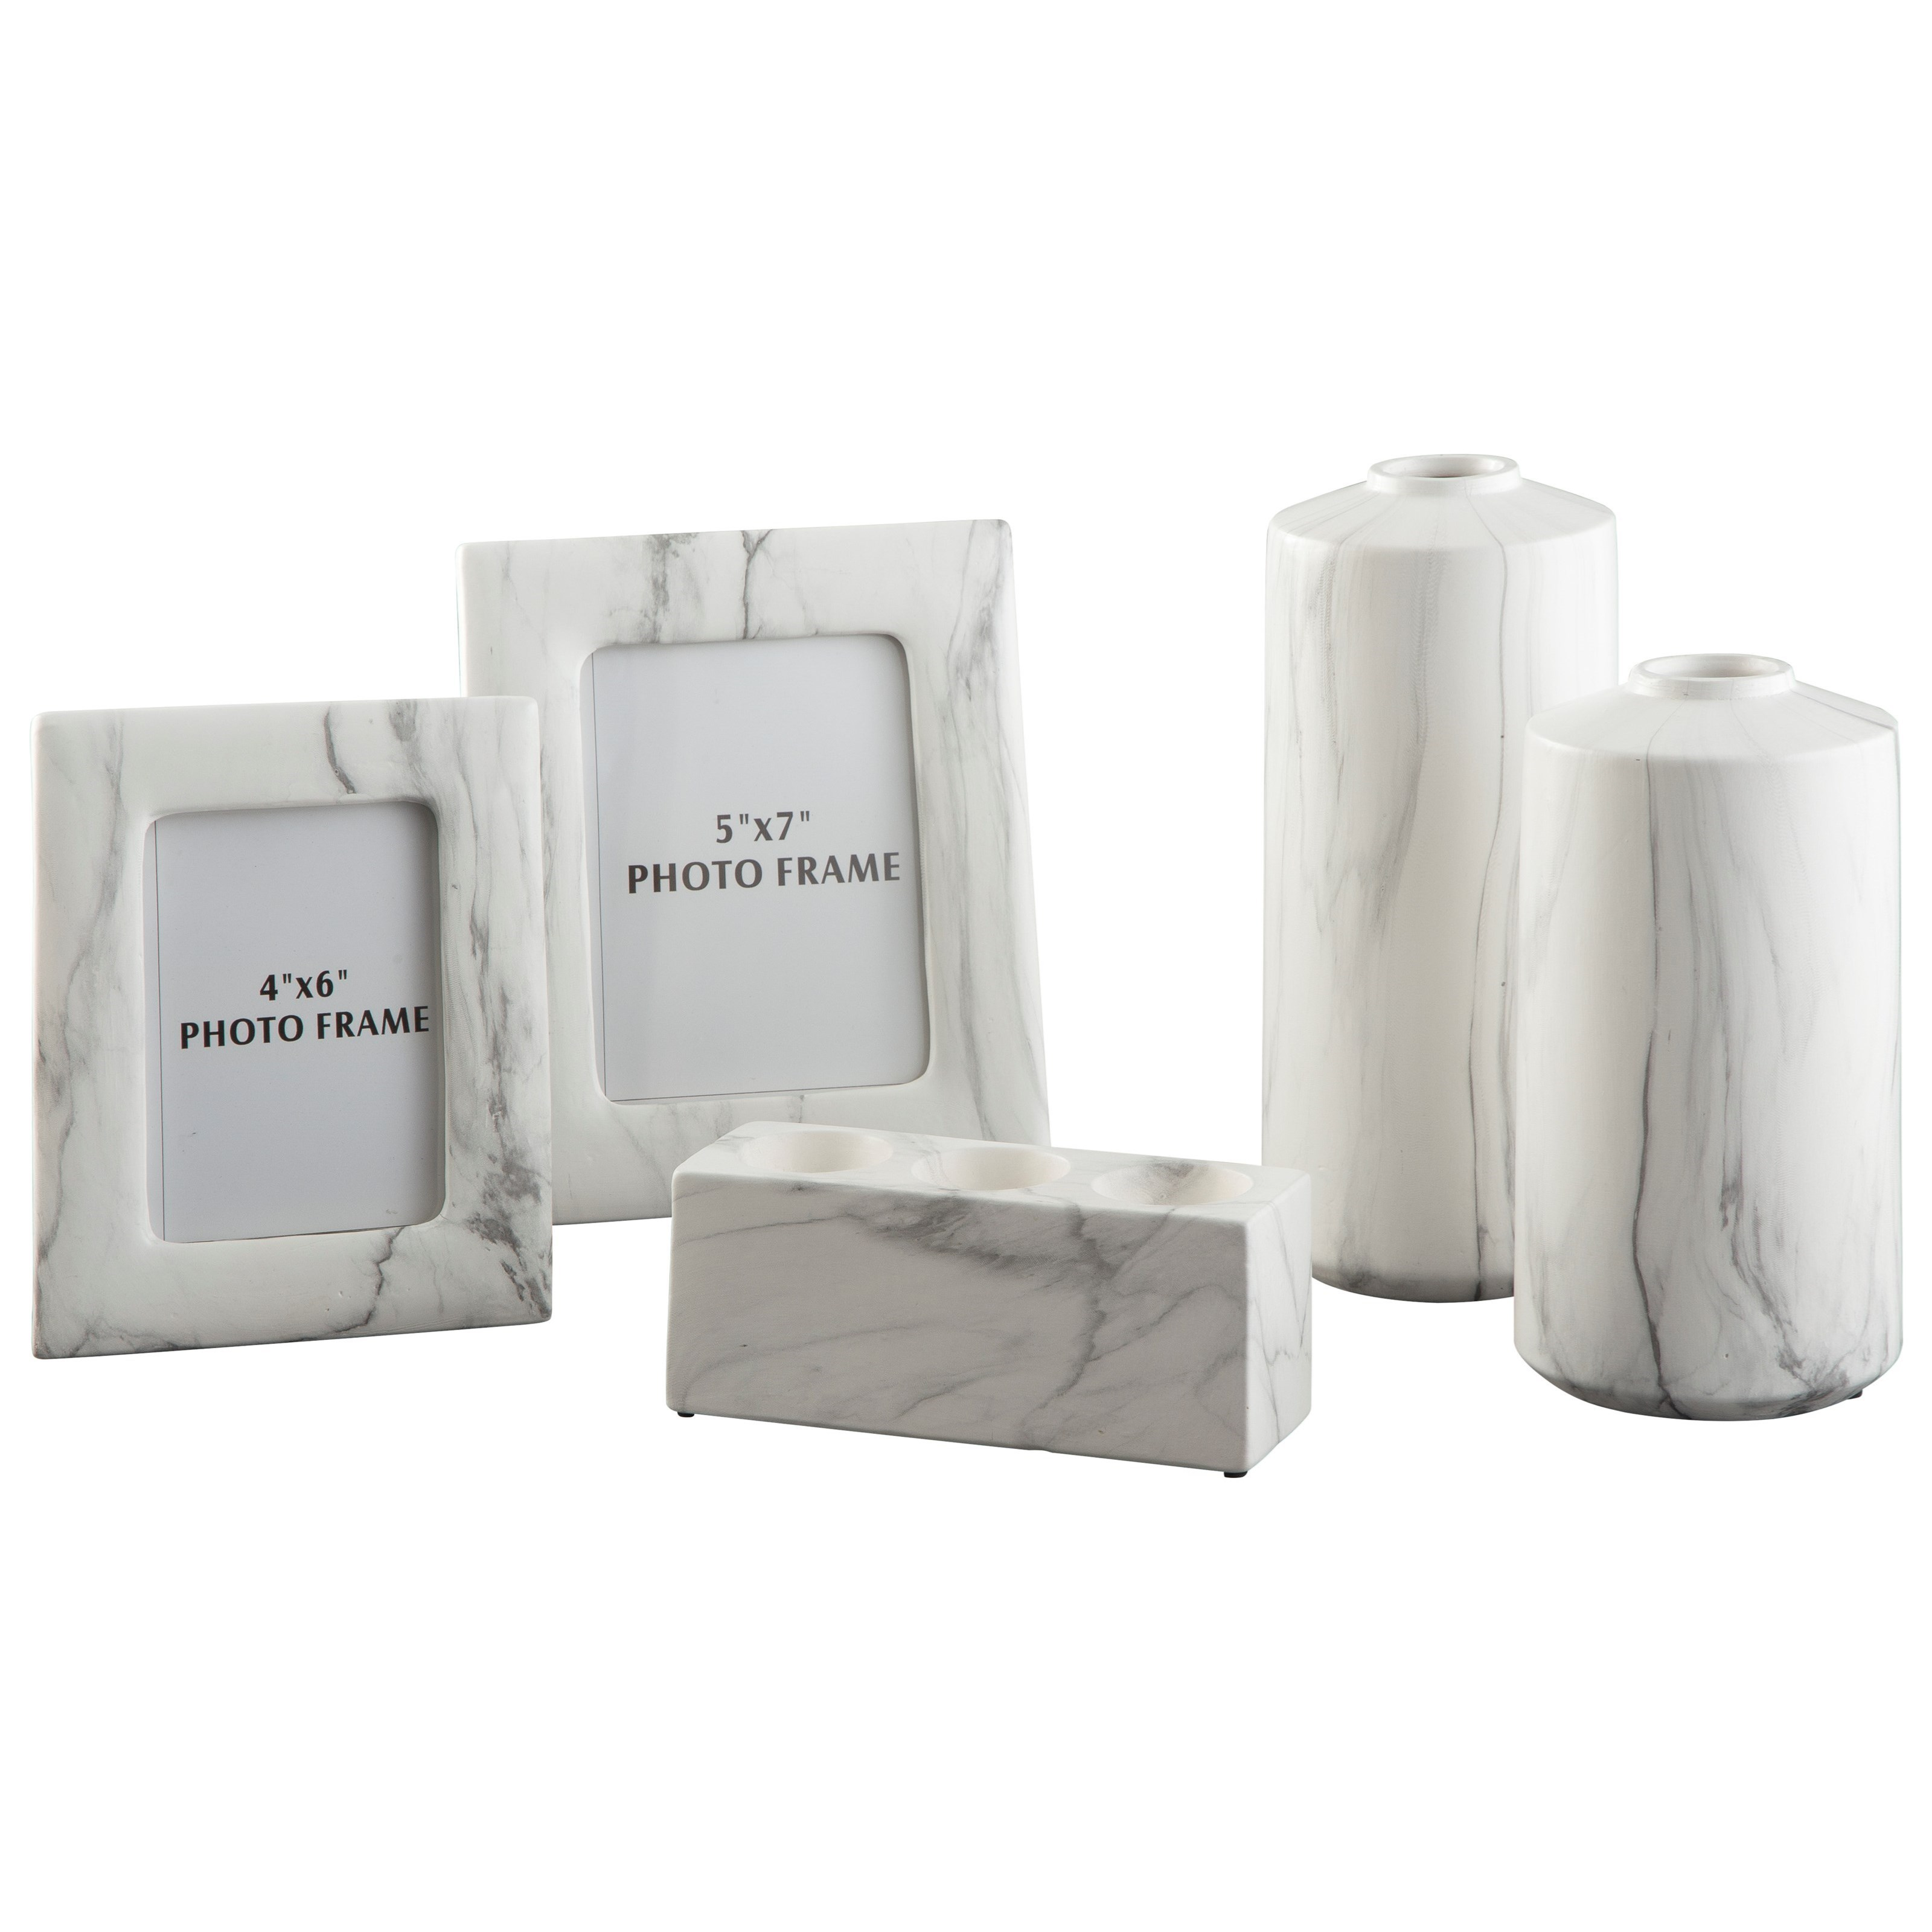 Accents 5-Piece Diogo White Accessory Set by Signature Design by Ashley at Lapeer Furniture & Mattress Center